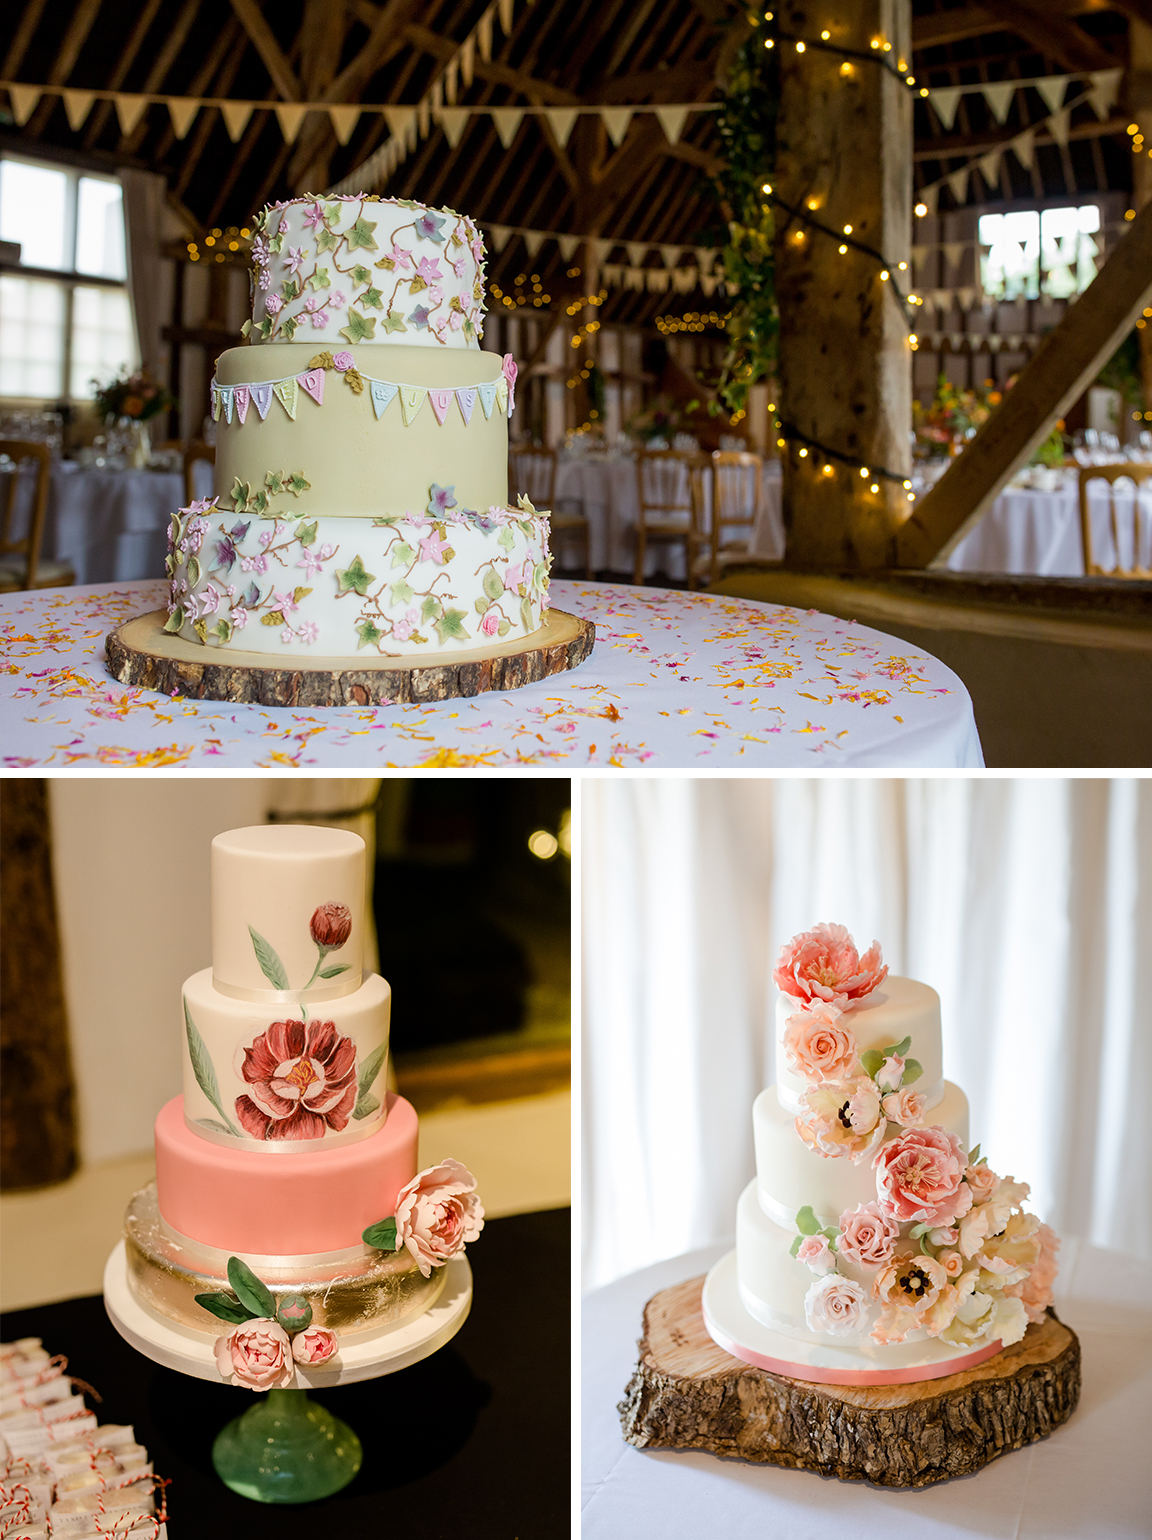 Pastel coloured wedding cakes